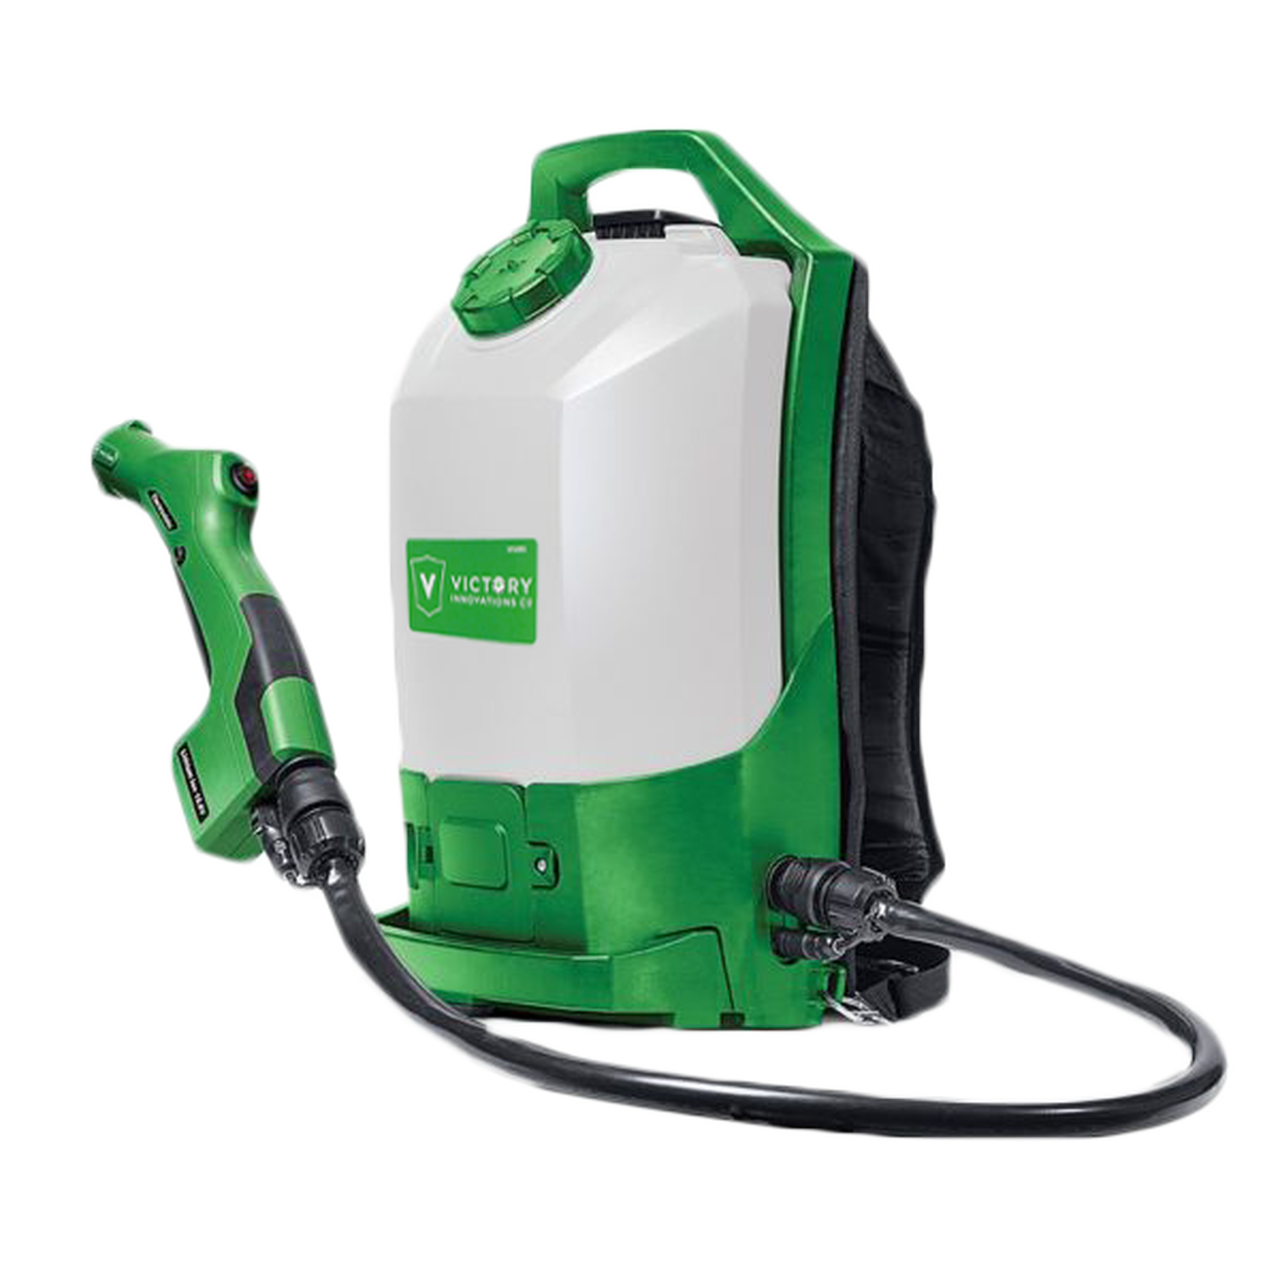 backpack-victory-electrostatic-sprayer_product-image